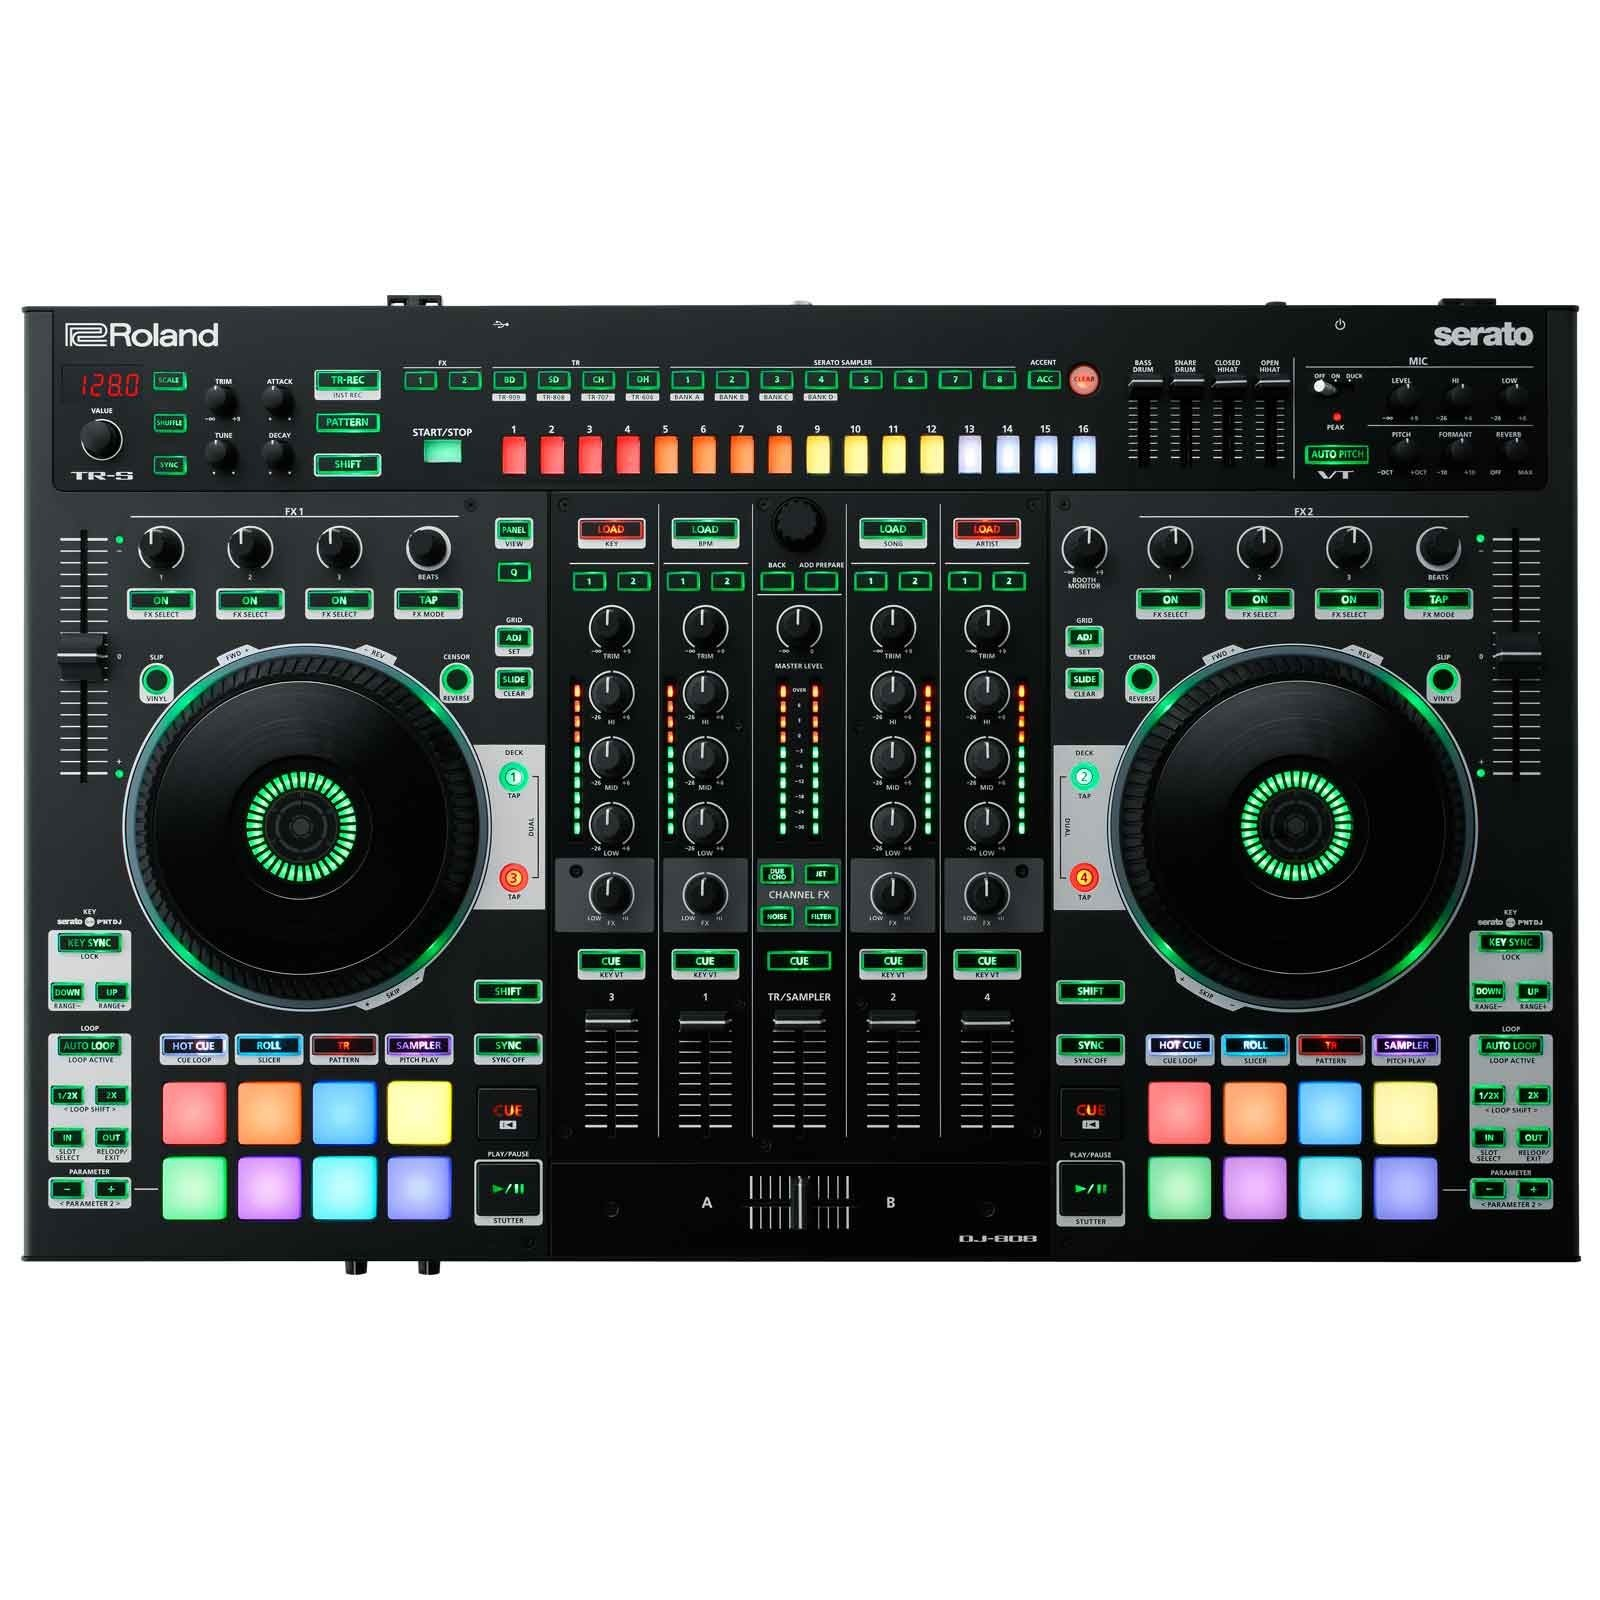 Roland Dj 808 4 Channel Mixer Amp Dj Controller For Sale